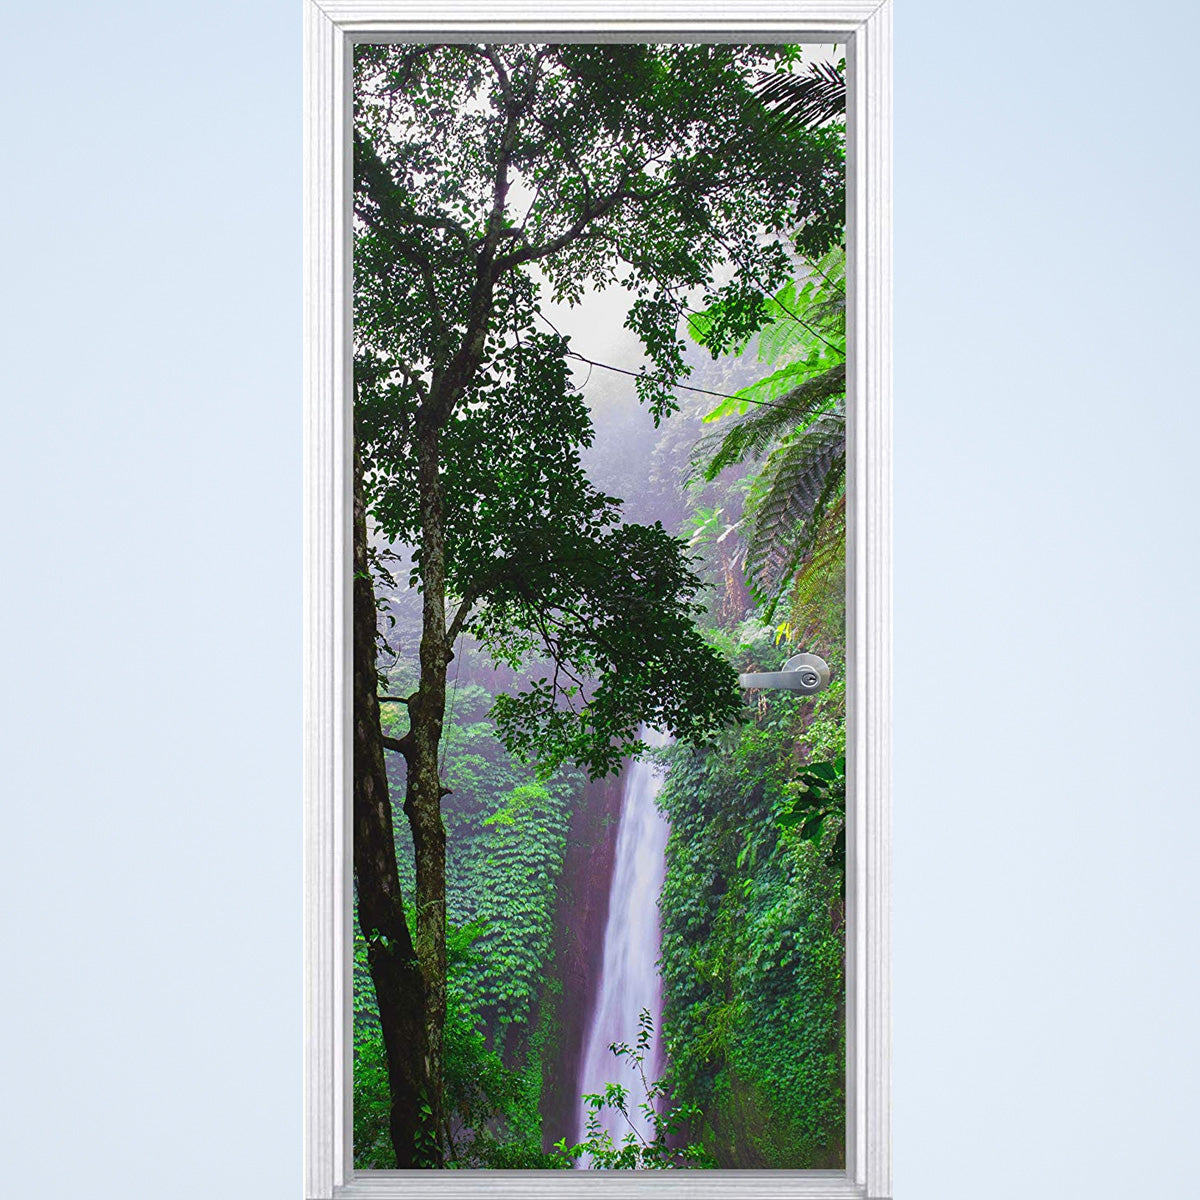 VWAQ Waterfall Vinyl Door Mural - Jungle Rainforest Door Wrap Decal Decor - DM9 - VWAQ Vinyl Wall Art Quotes and Prints